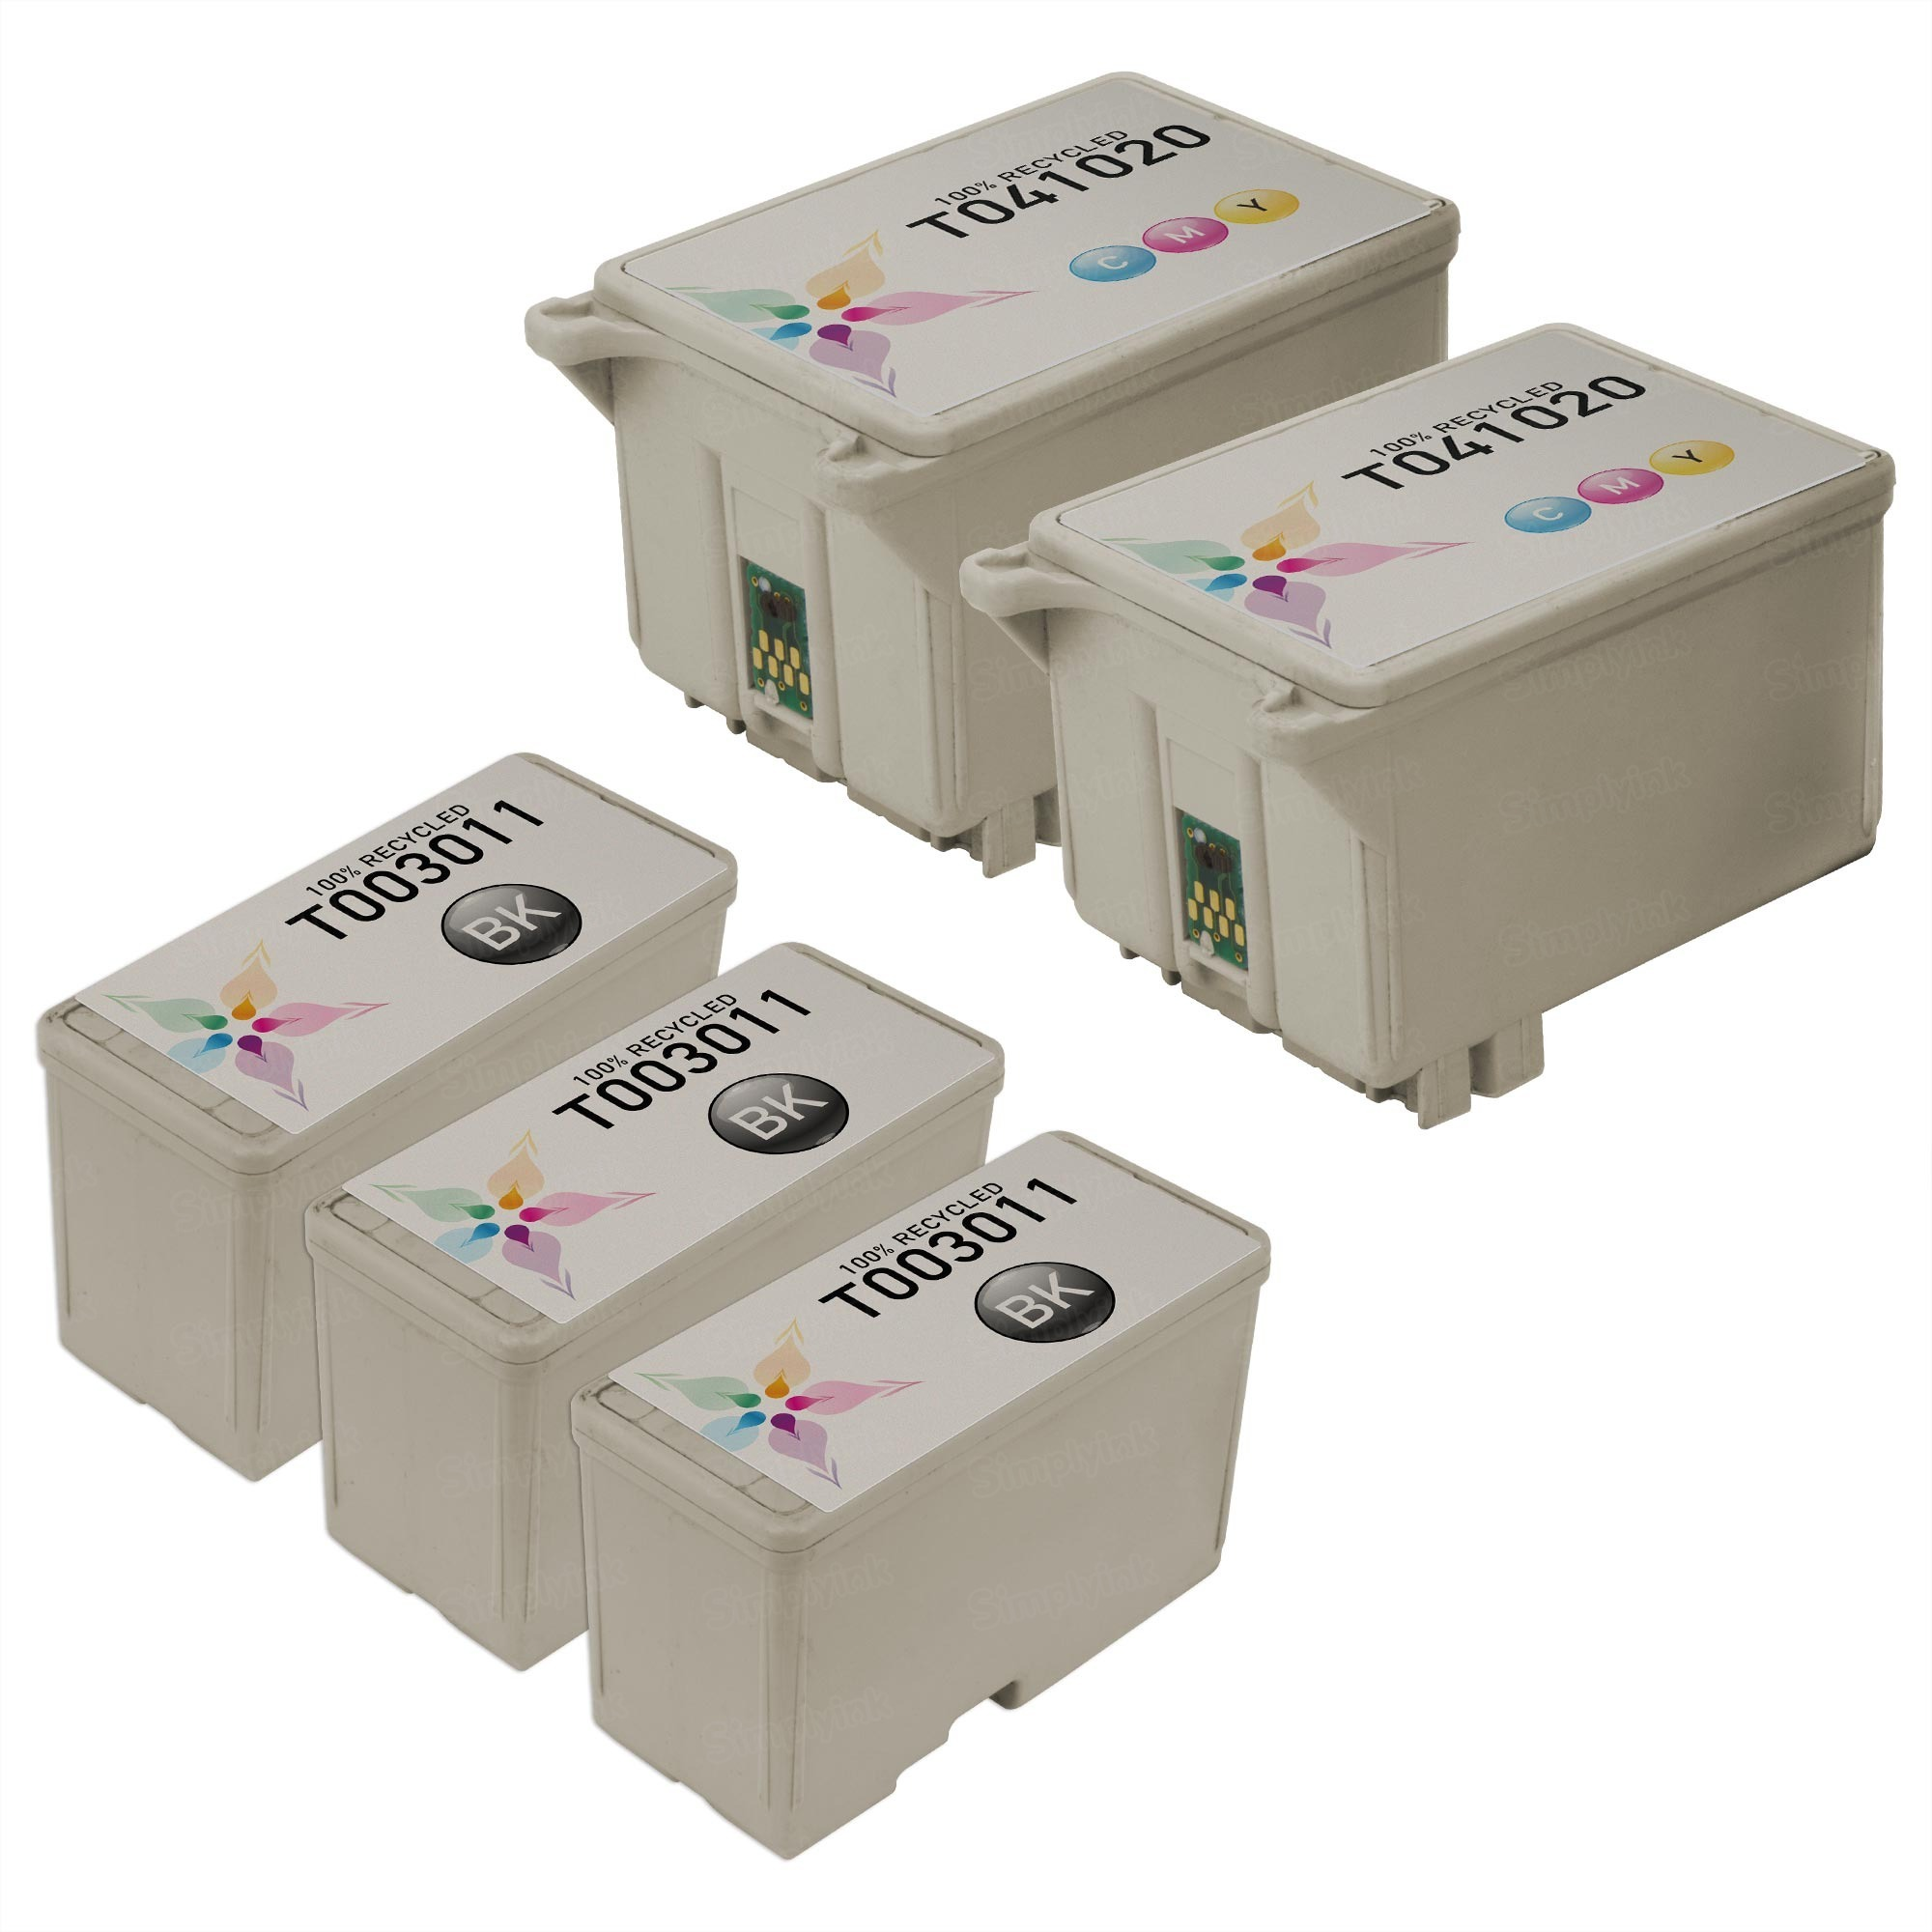 Inkjet Supplies for Epson Printers - Remanufactured Bulk Set of 5 Ink Cartridges 3 Black Epson T003011 (T003) and 2 Color Epson T005011 (T005)